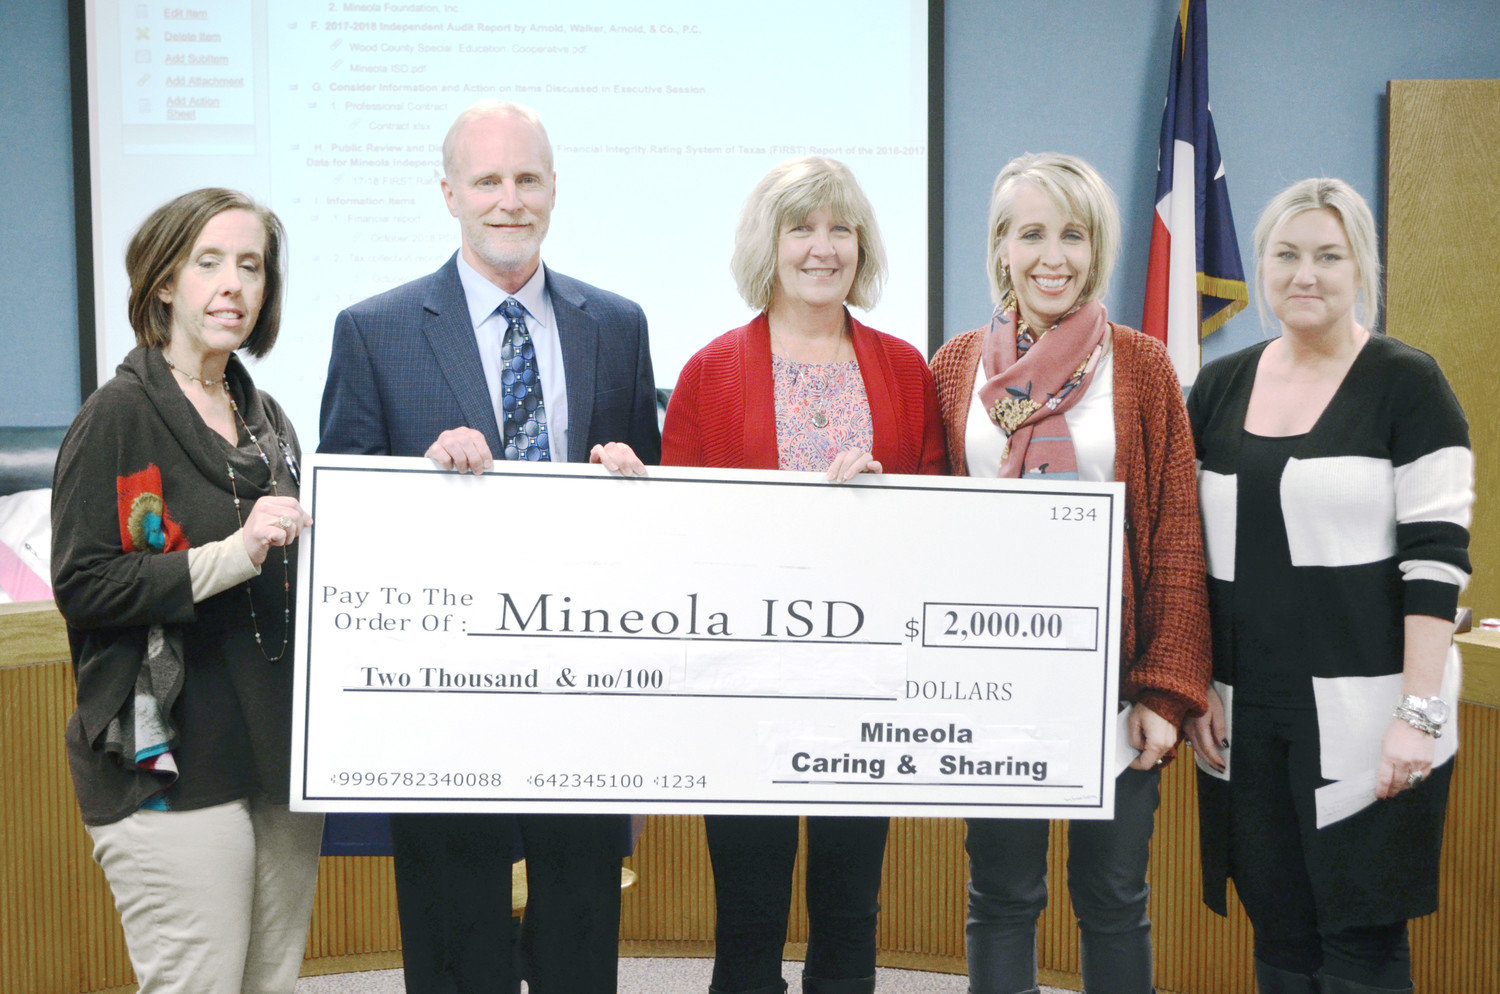 Caring & Sharing of Mineola made a $2,000 donation to the Mineola Independent School District at the Nov. 26 school board meeting. Each campus received $500 and the money will be placed in a benevolent fund for field trip fees, school supplies, clothing, shoes, and other supplies that students need. The district's four principals accepted the contribution. From left is Stacy Morris (Elementary School), David Sauer (High School), Becky Moore of Caring & Sharing, Kendall Gould (Middle School), and Jole Ray (Primary School). (Monitor photo by Hank Murphy).